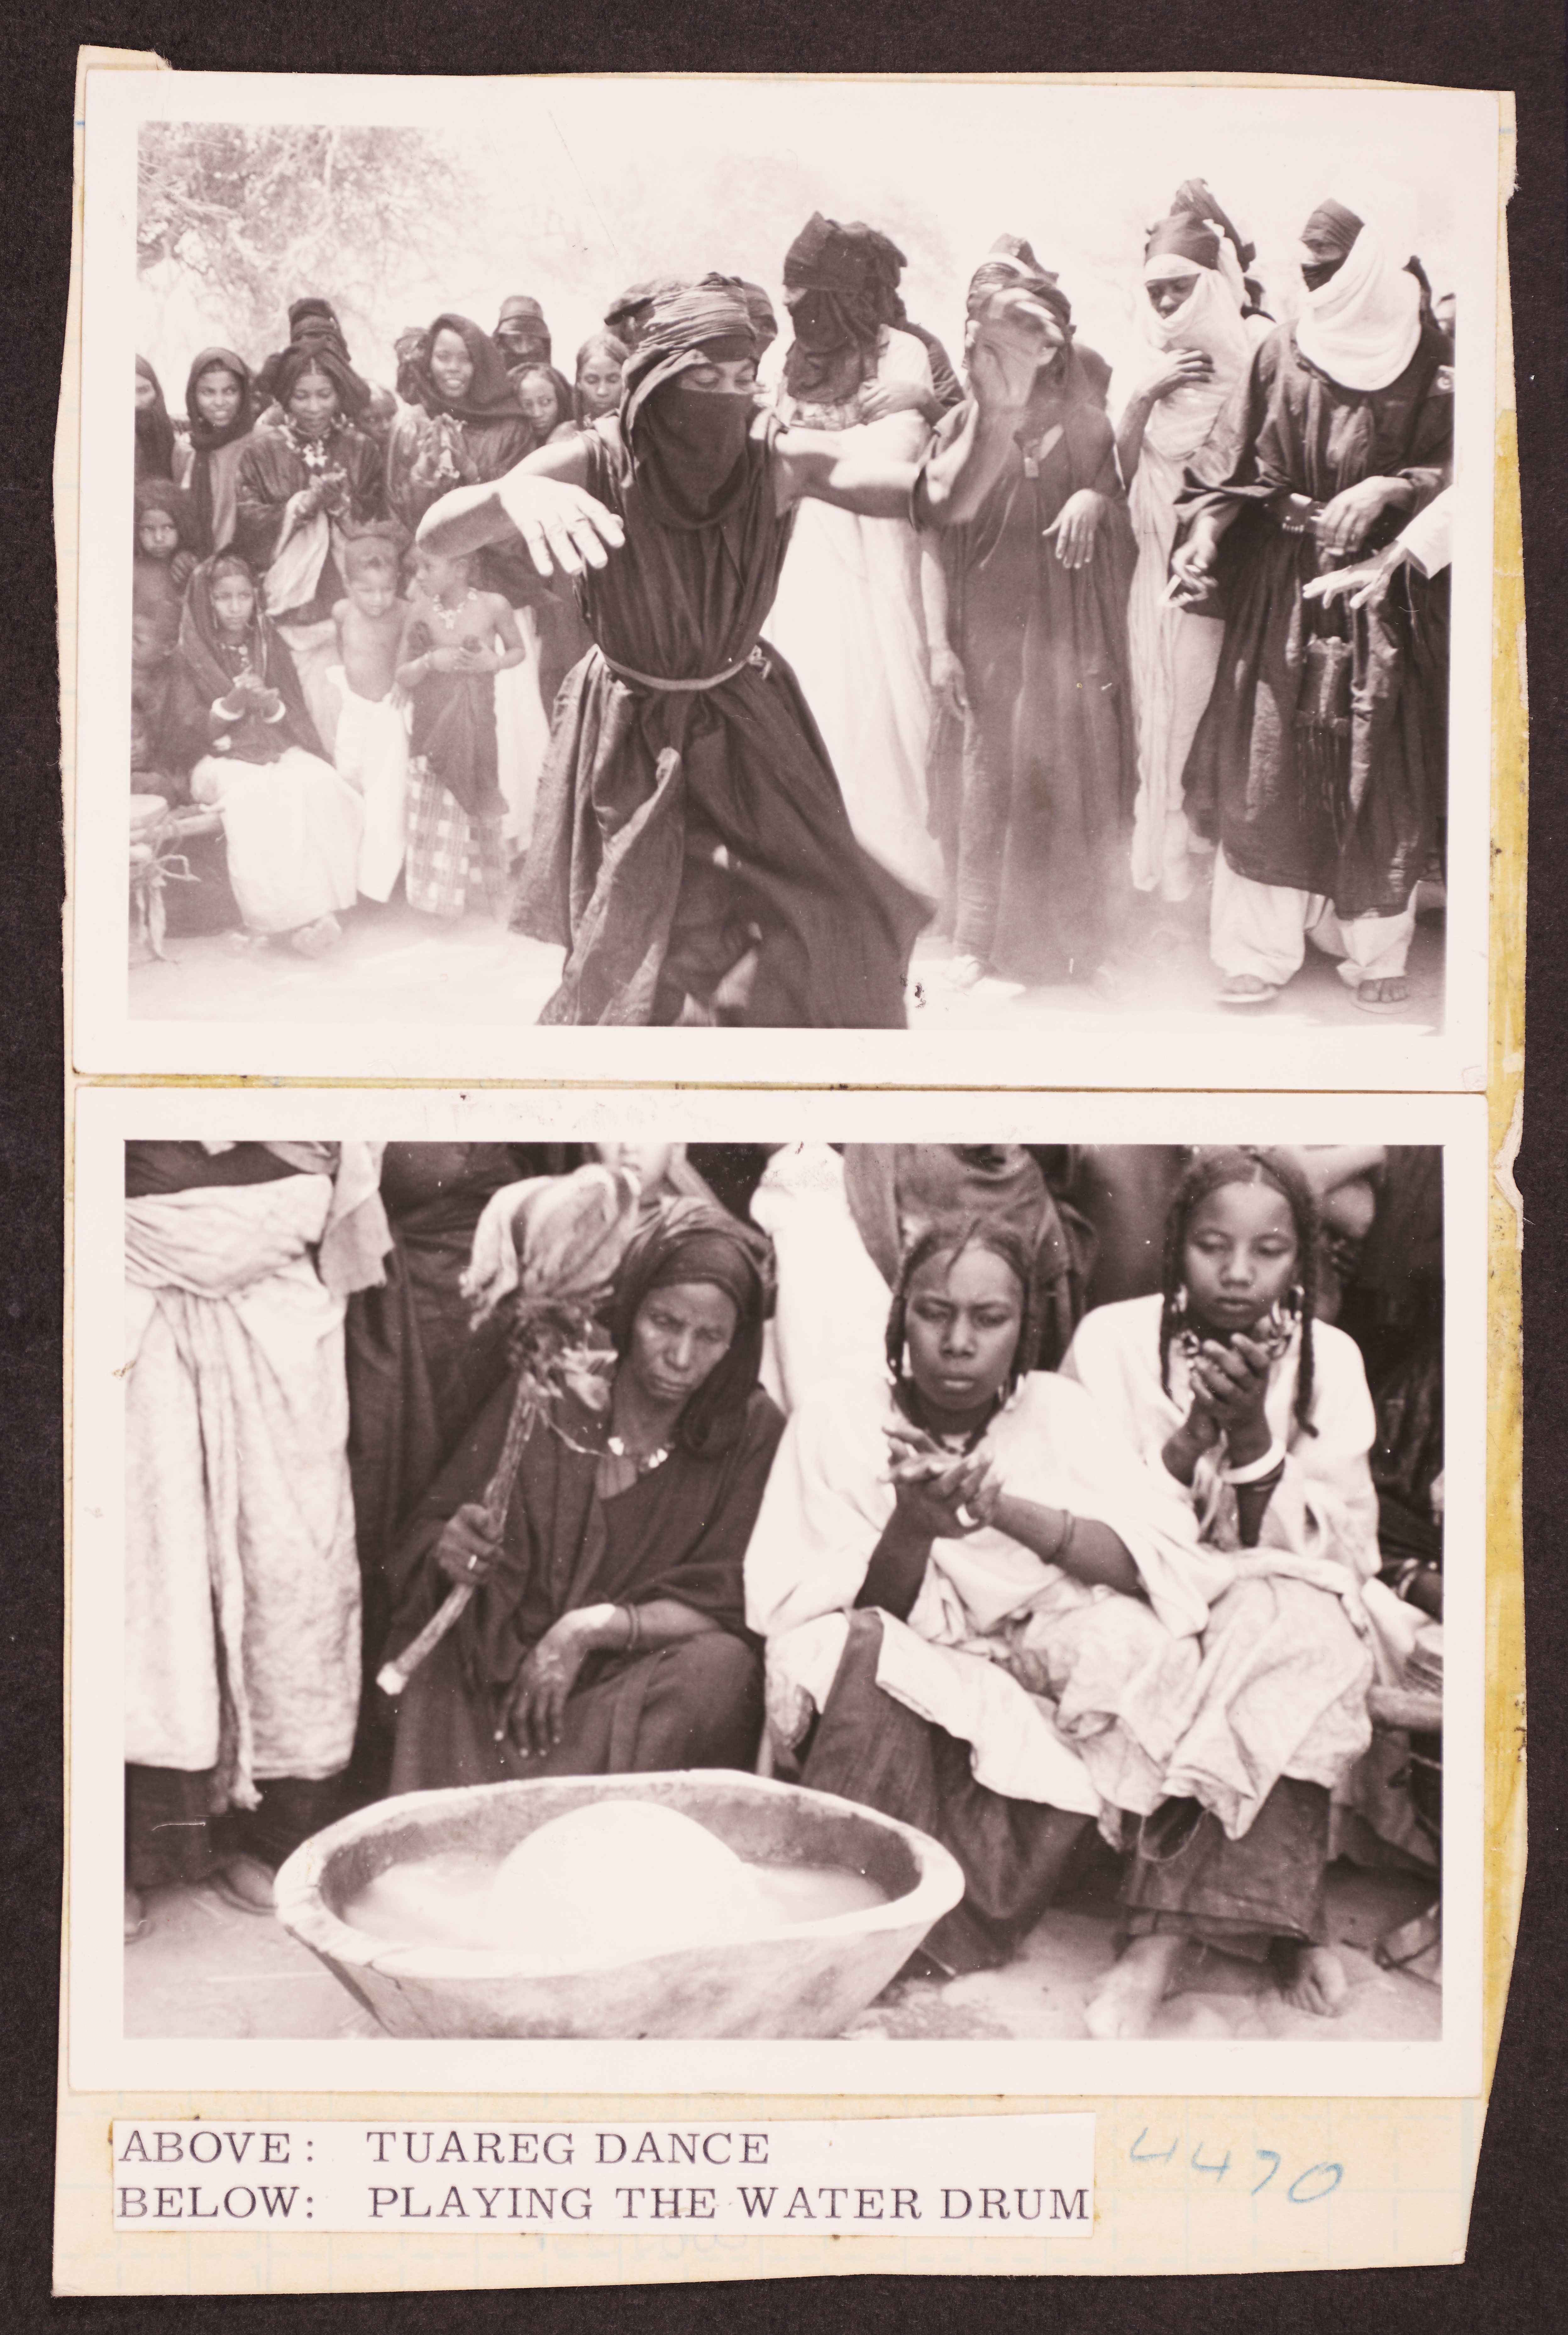 Tuareg_Dance_and_Women_Playing_the_Water_Drum__photo_courtesy_of_the_Moses_and_Frances_Asch_Collection